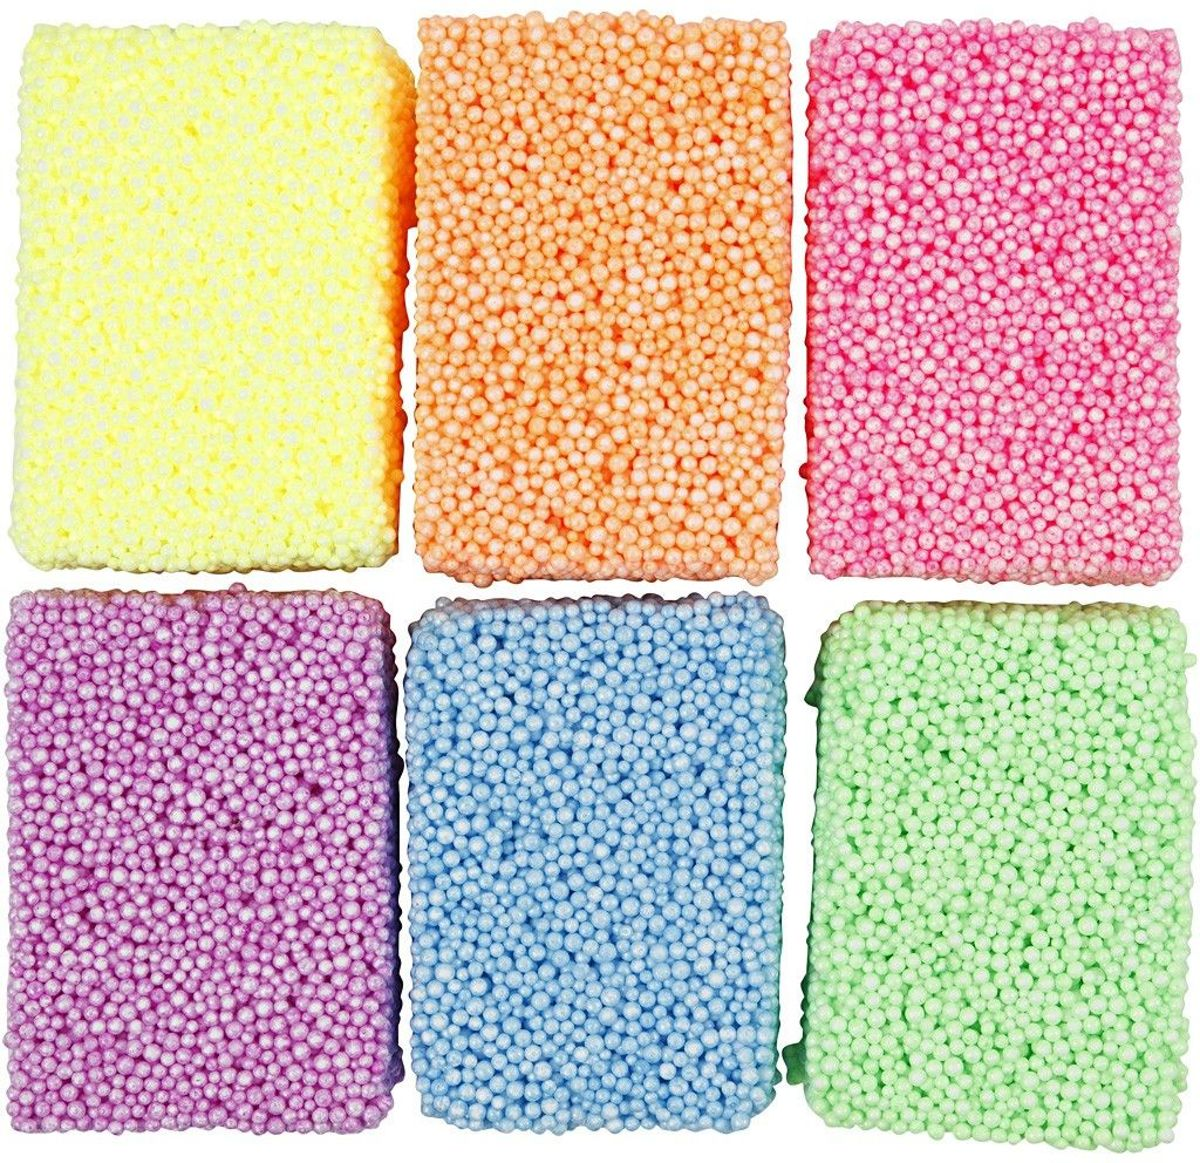 Soft Foam, 6x10 gr, kleuren assorti